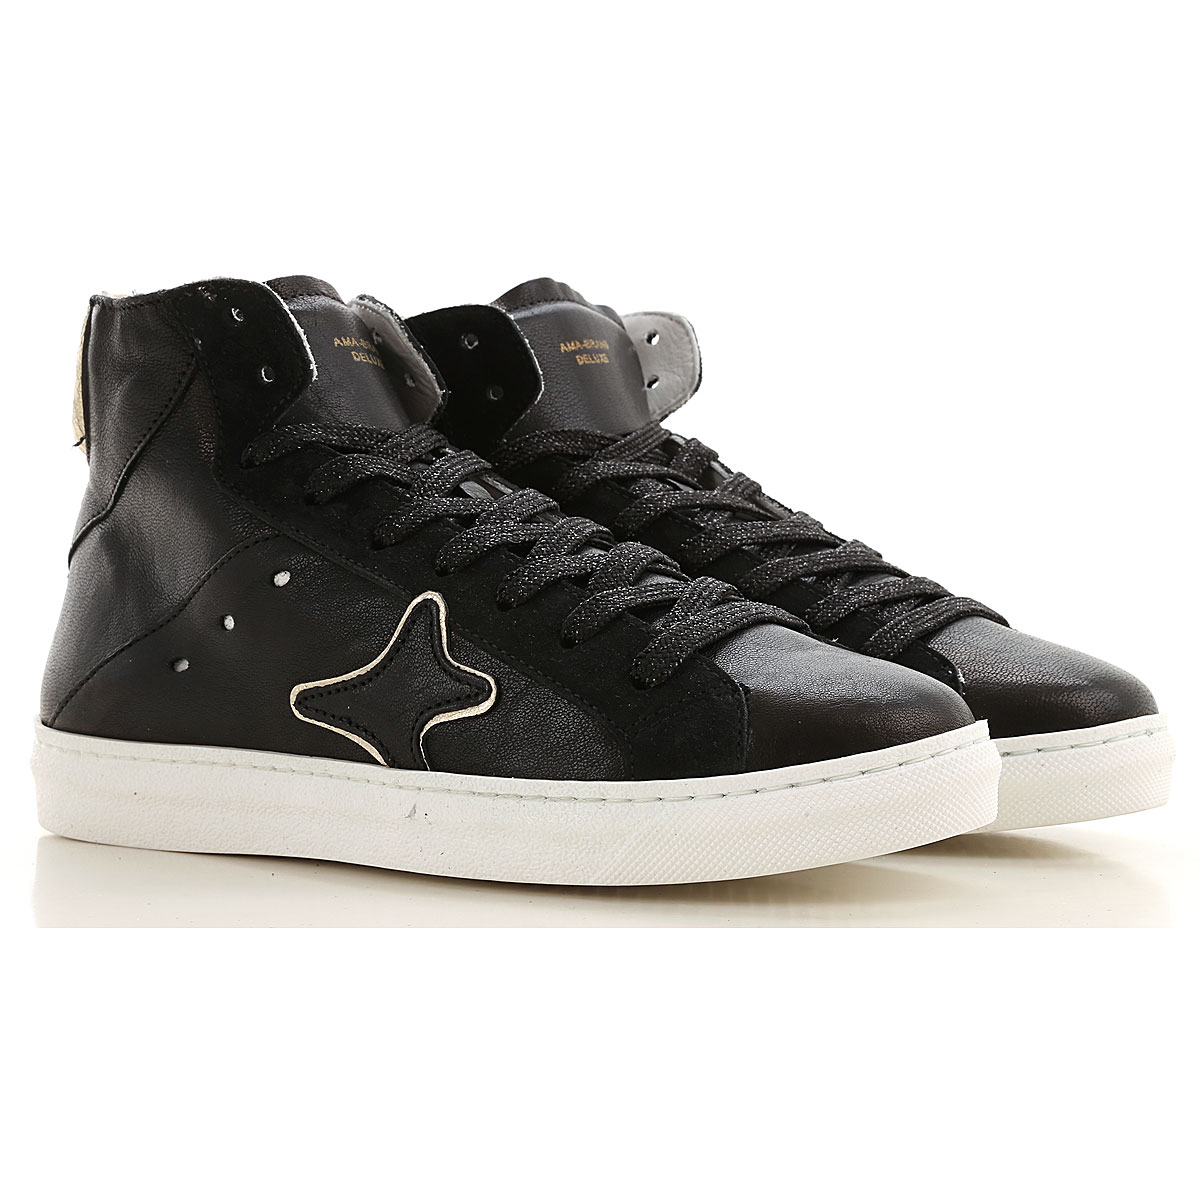 Ama Brand Sneakers for Women, Black, Leather, 2019, EUR 36 - UK 3 - USA 5.5 EUR 37 - UK 4 - USA 6.5 EUR 38 - UK 5 - USA 7.5